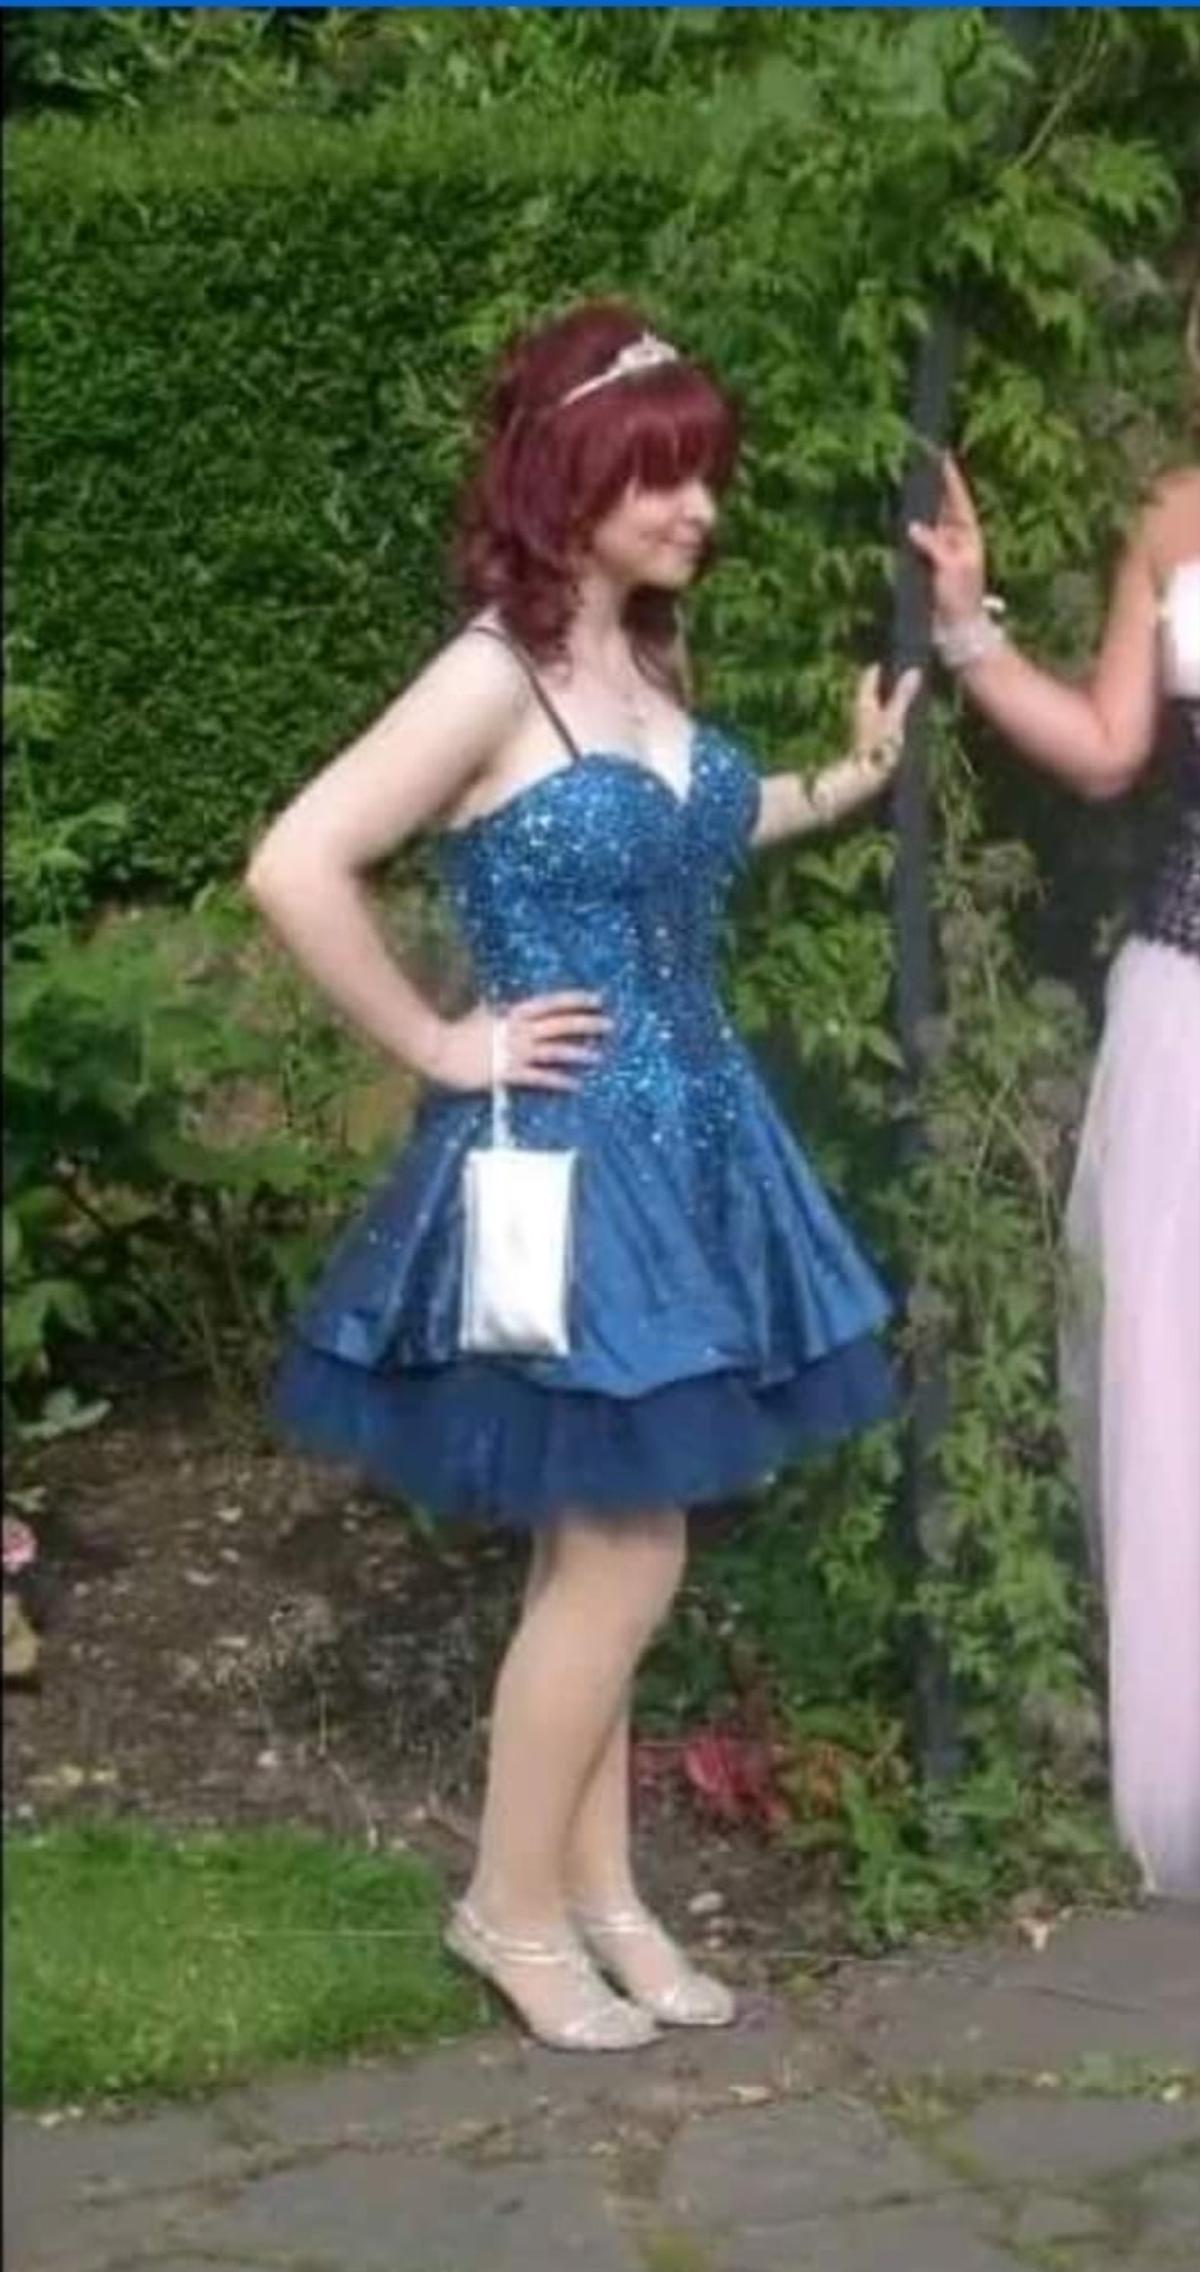 a412b5bd72 Dynasty London Prom Dress in SK14 Tameside for £70.00 for sale - Shpock